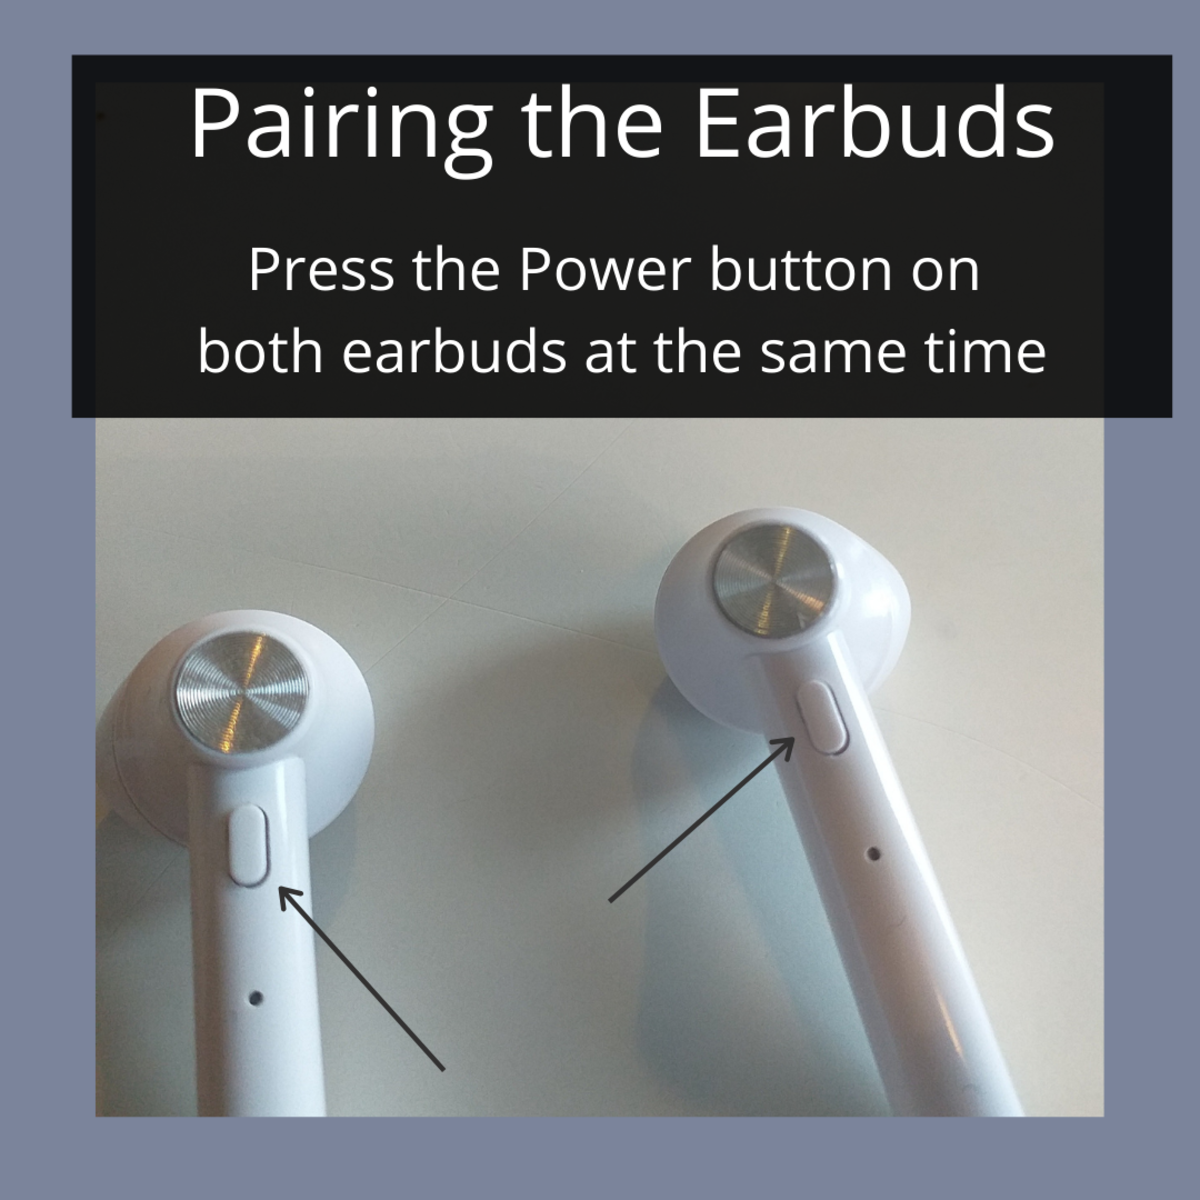 How to pair both wireless earbuds to each other when they are not connected to Bluetooth